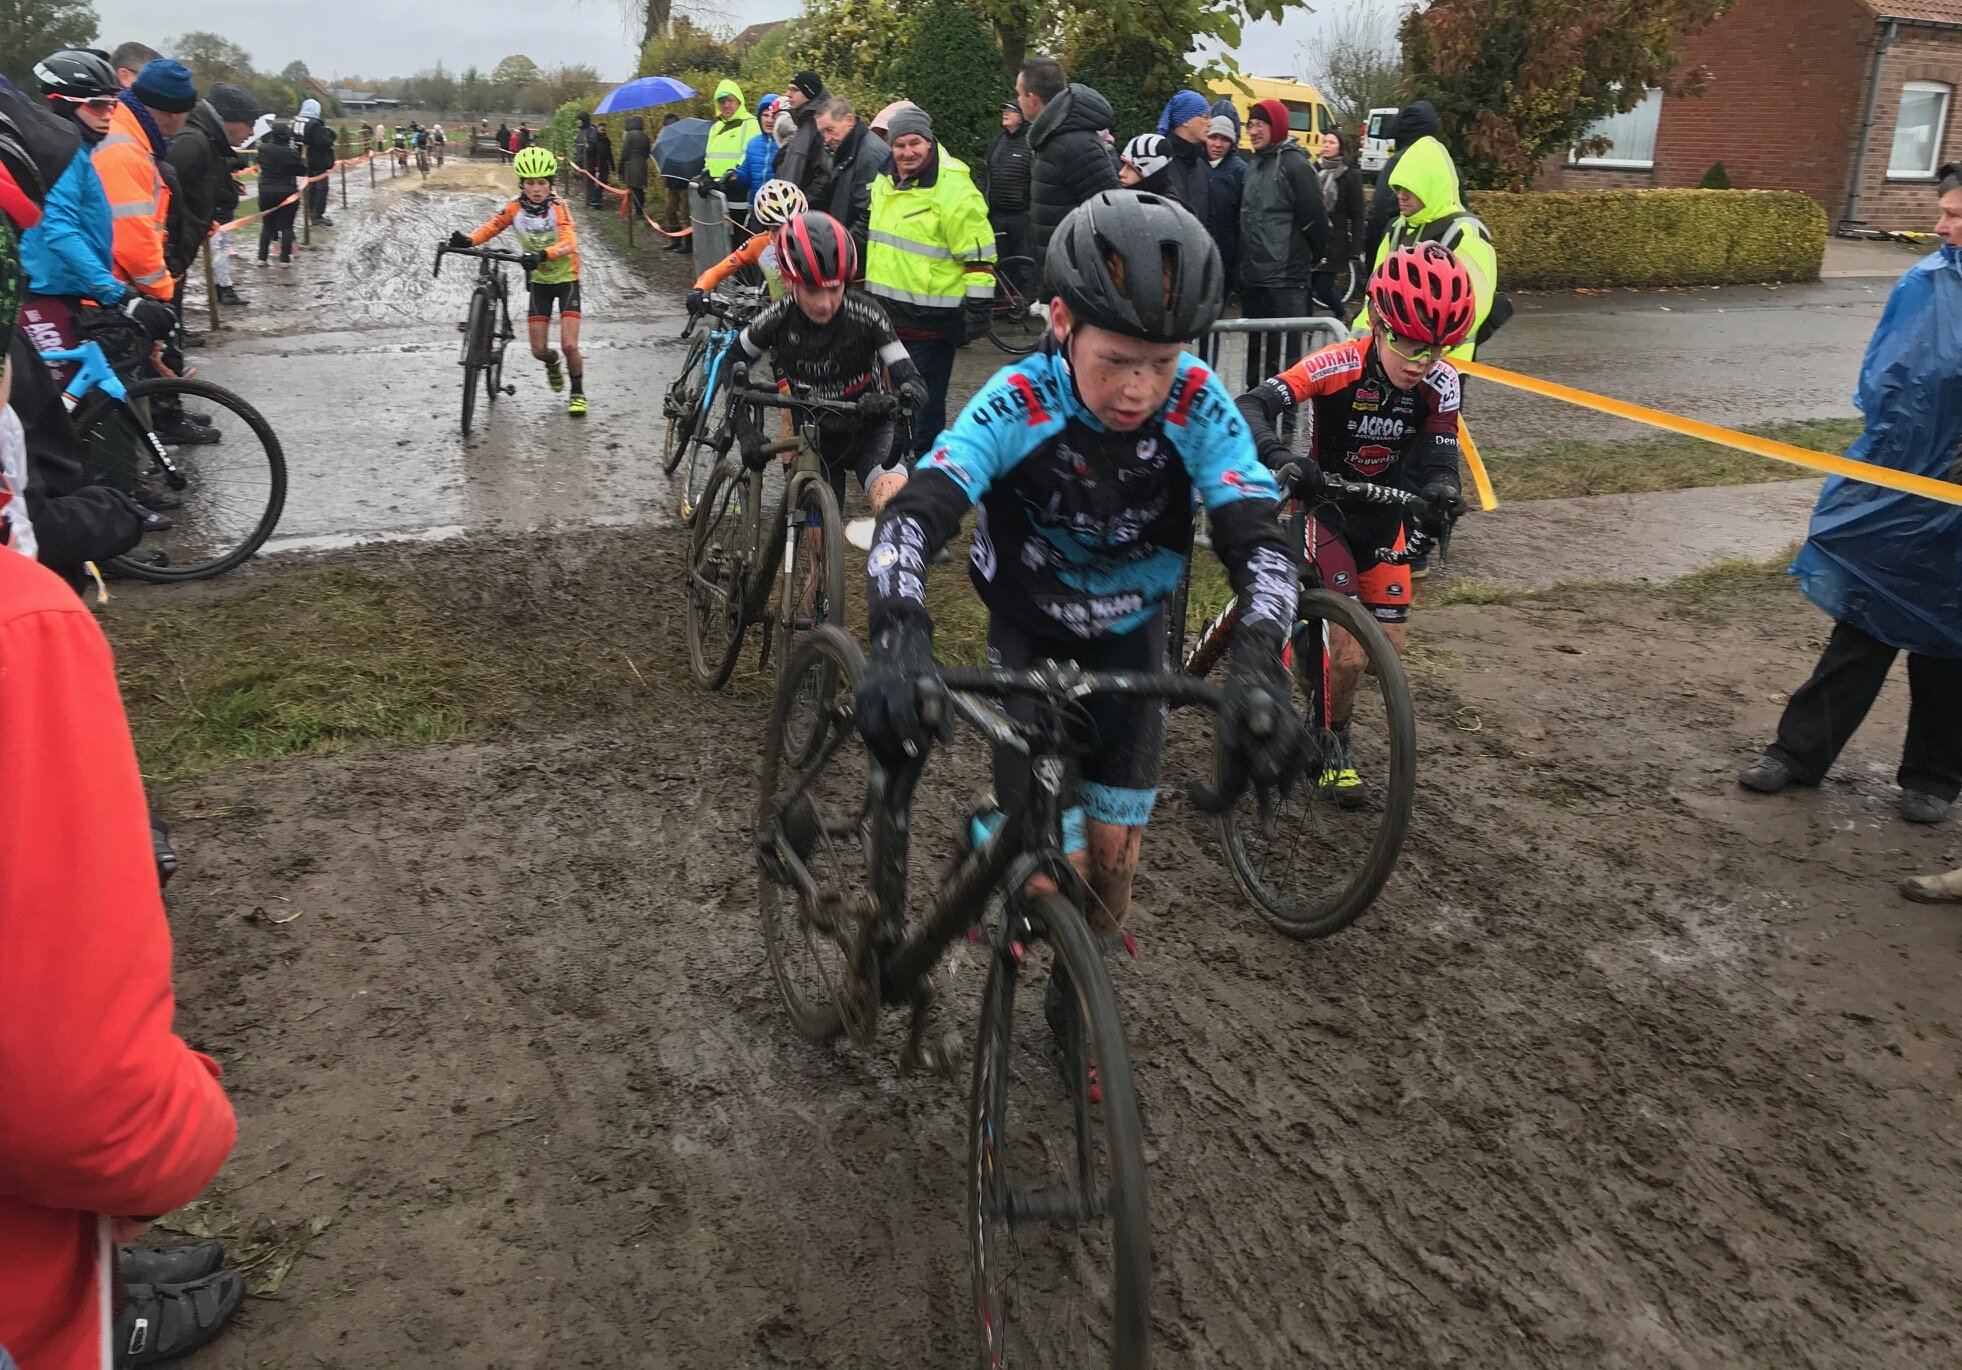 Flanders Cyclocross Championship @ Litcherfield @ 11 Nov - The Junior race had 70 starters in cold & wet conditions.